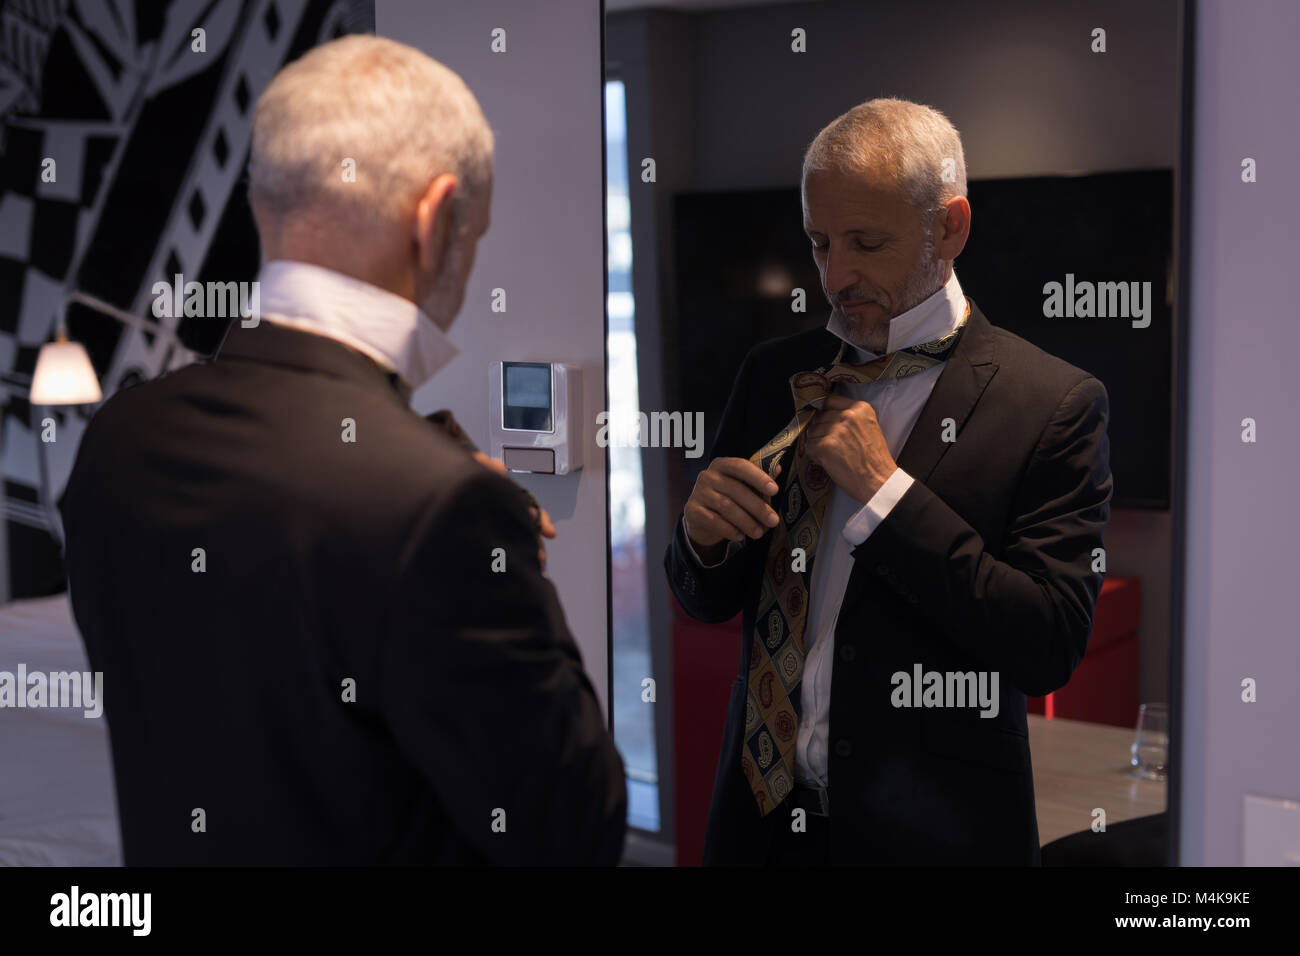 Businessman tying his tie in front of a mirror - Stock Image